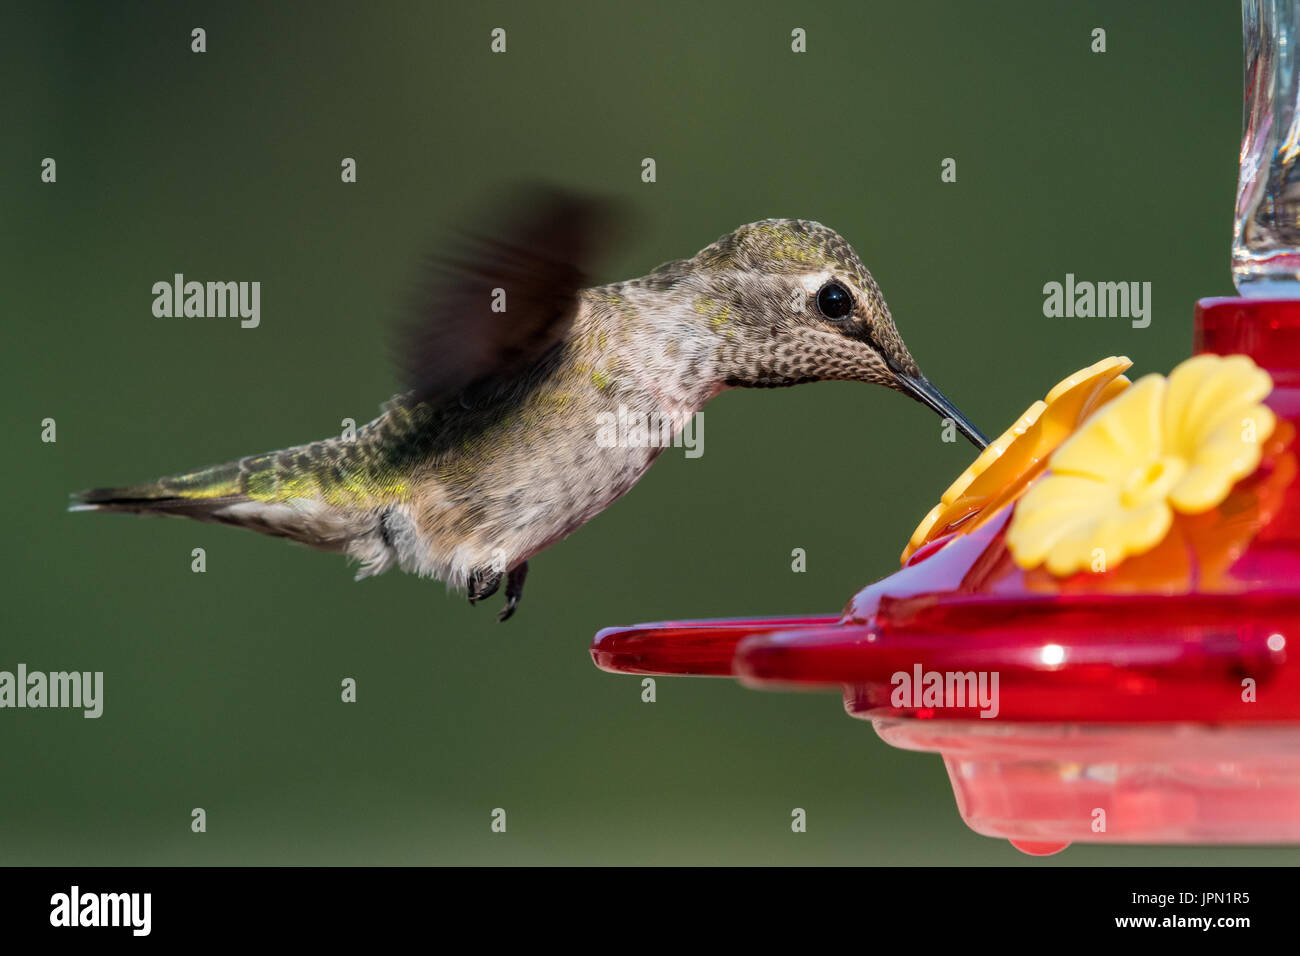 Female Anna's Hummingbird in flight. - Stock Image